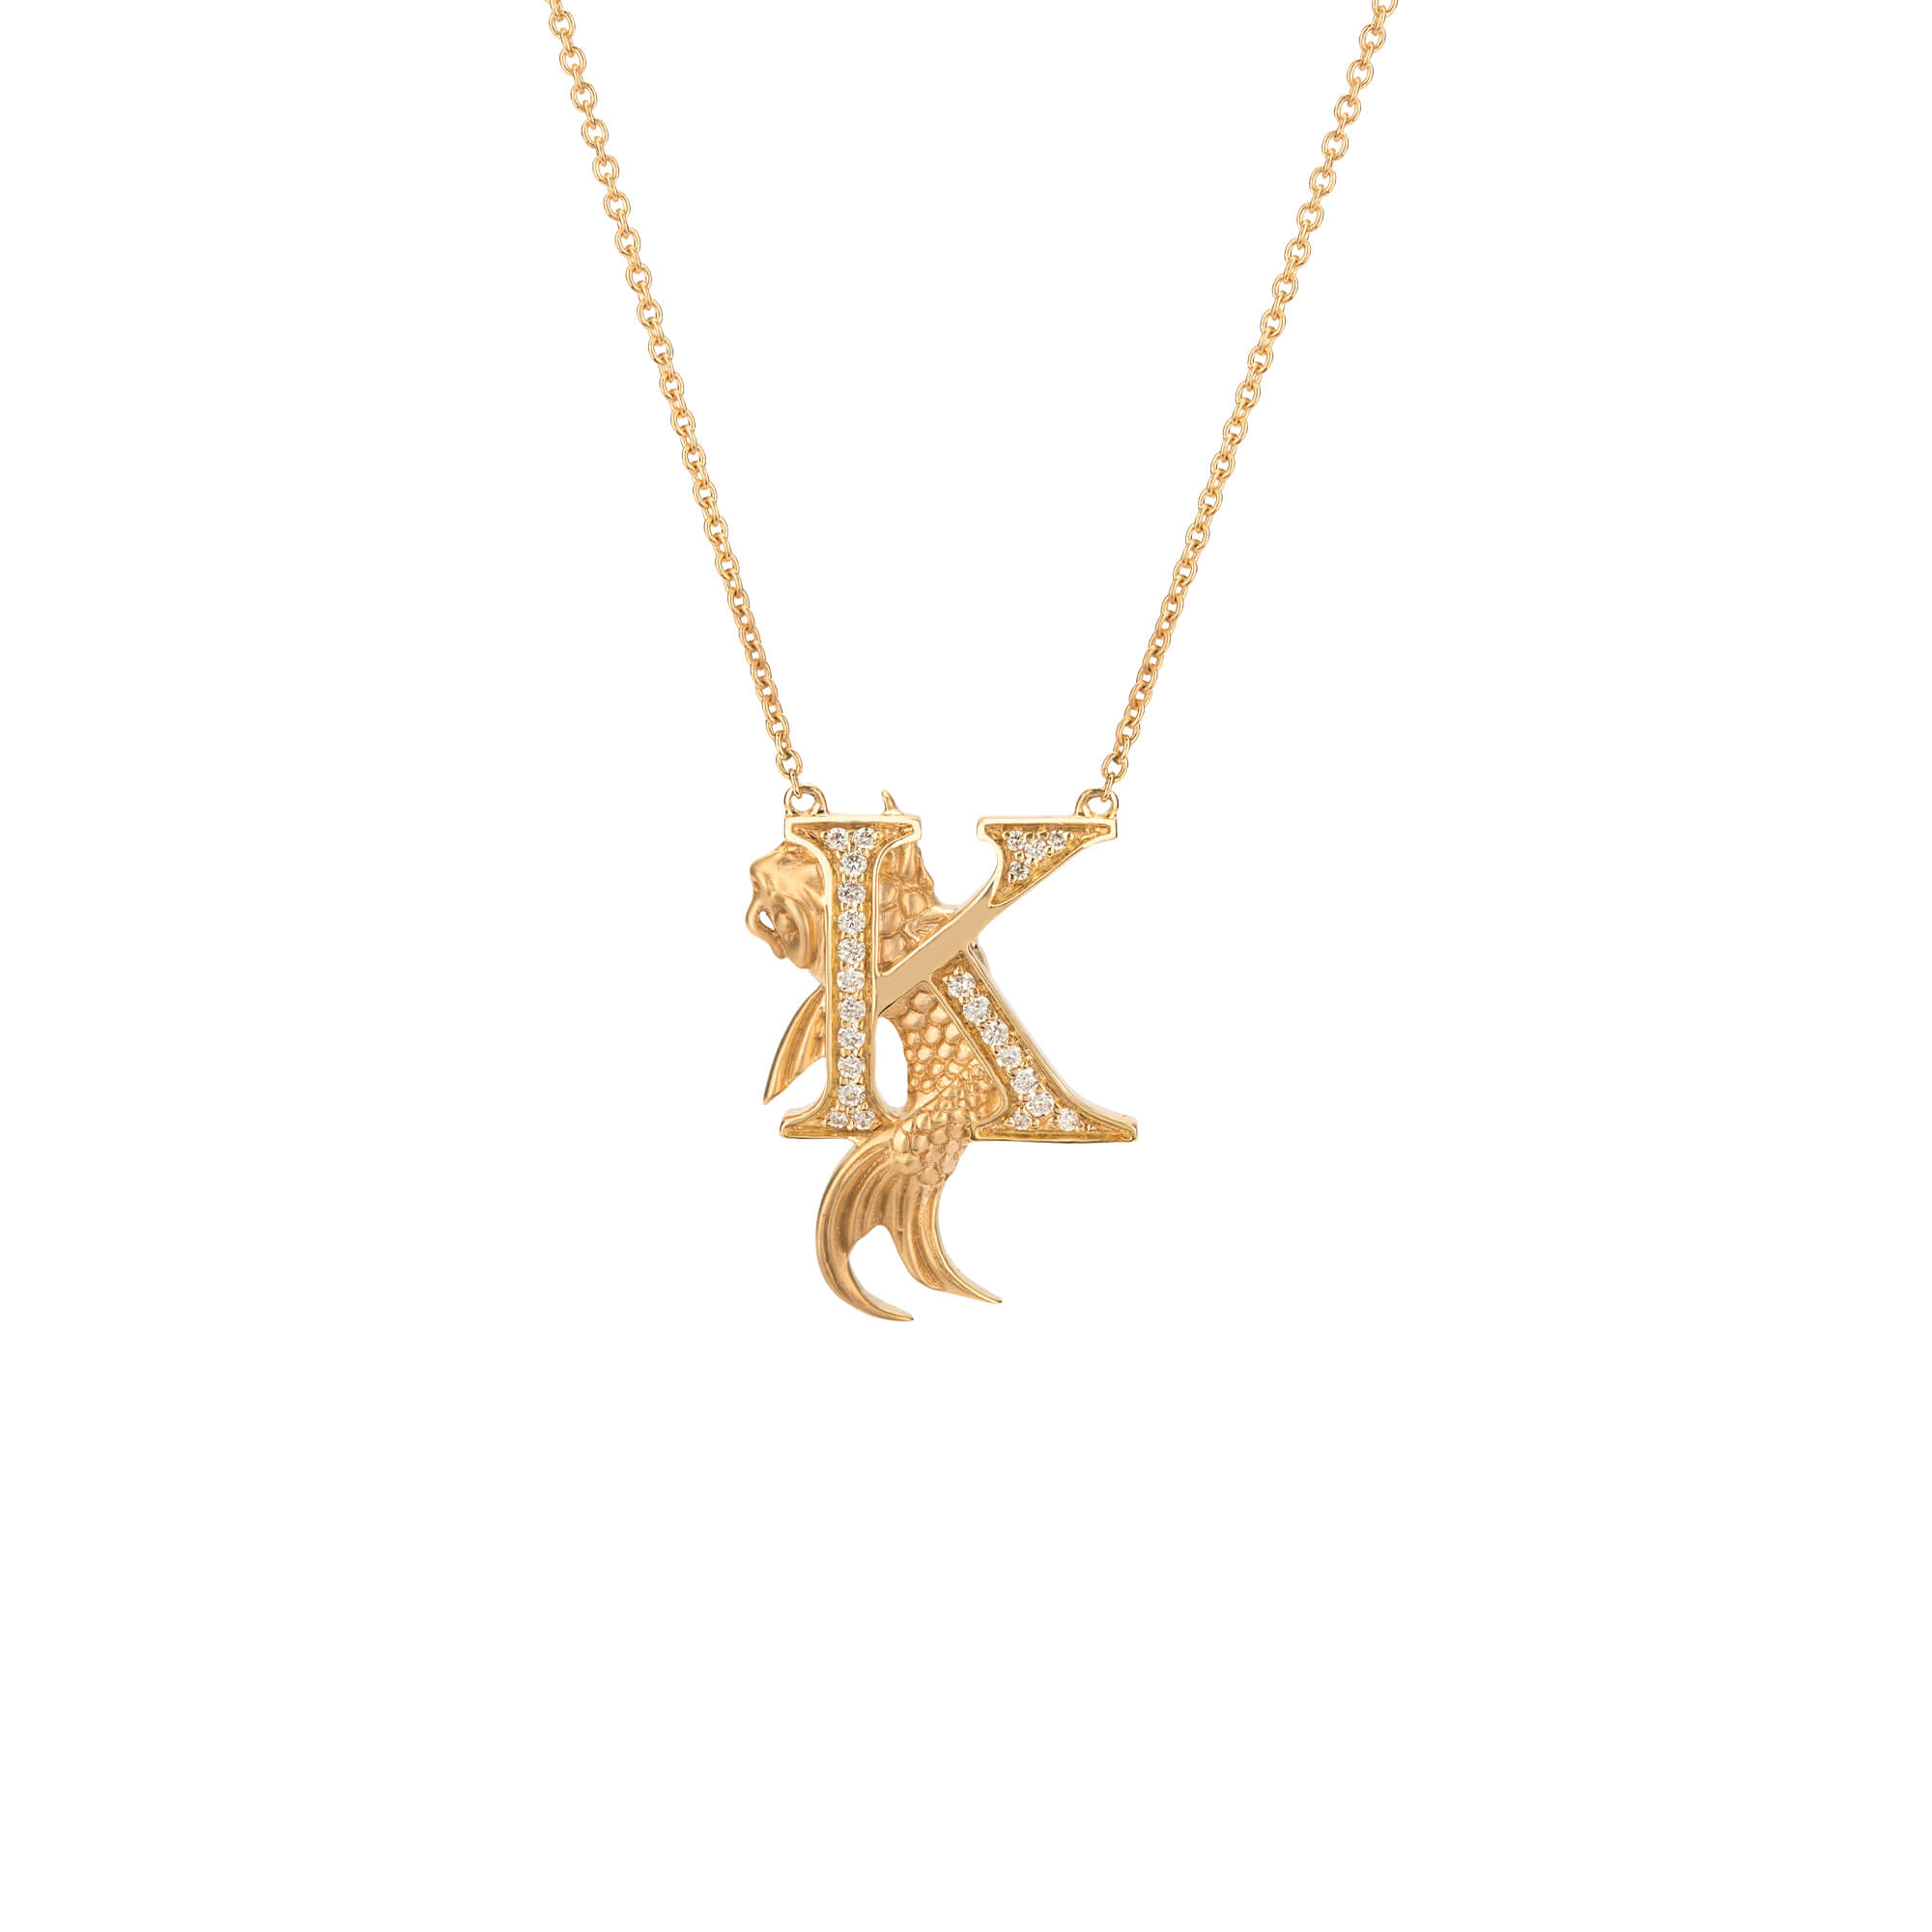 K is for Koi Carp Gold Necklace | Fish Tales